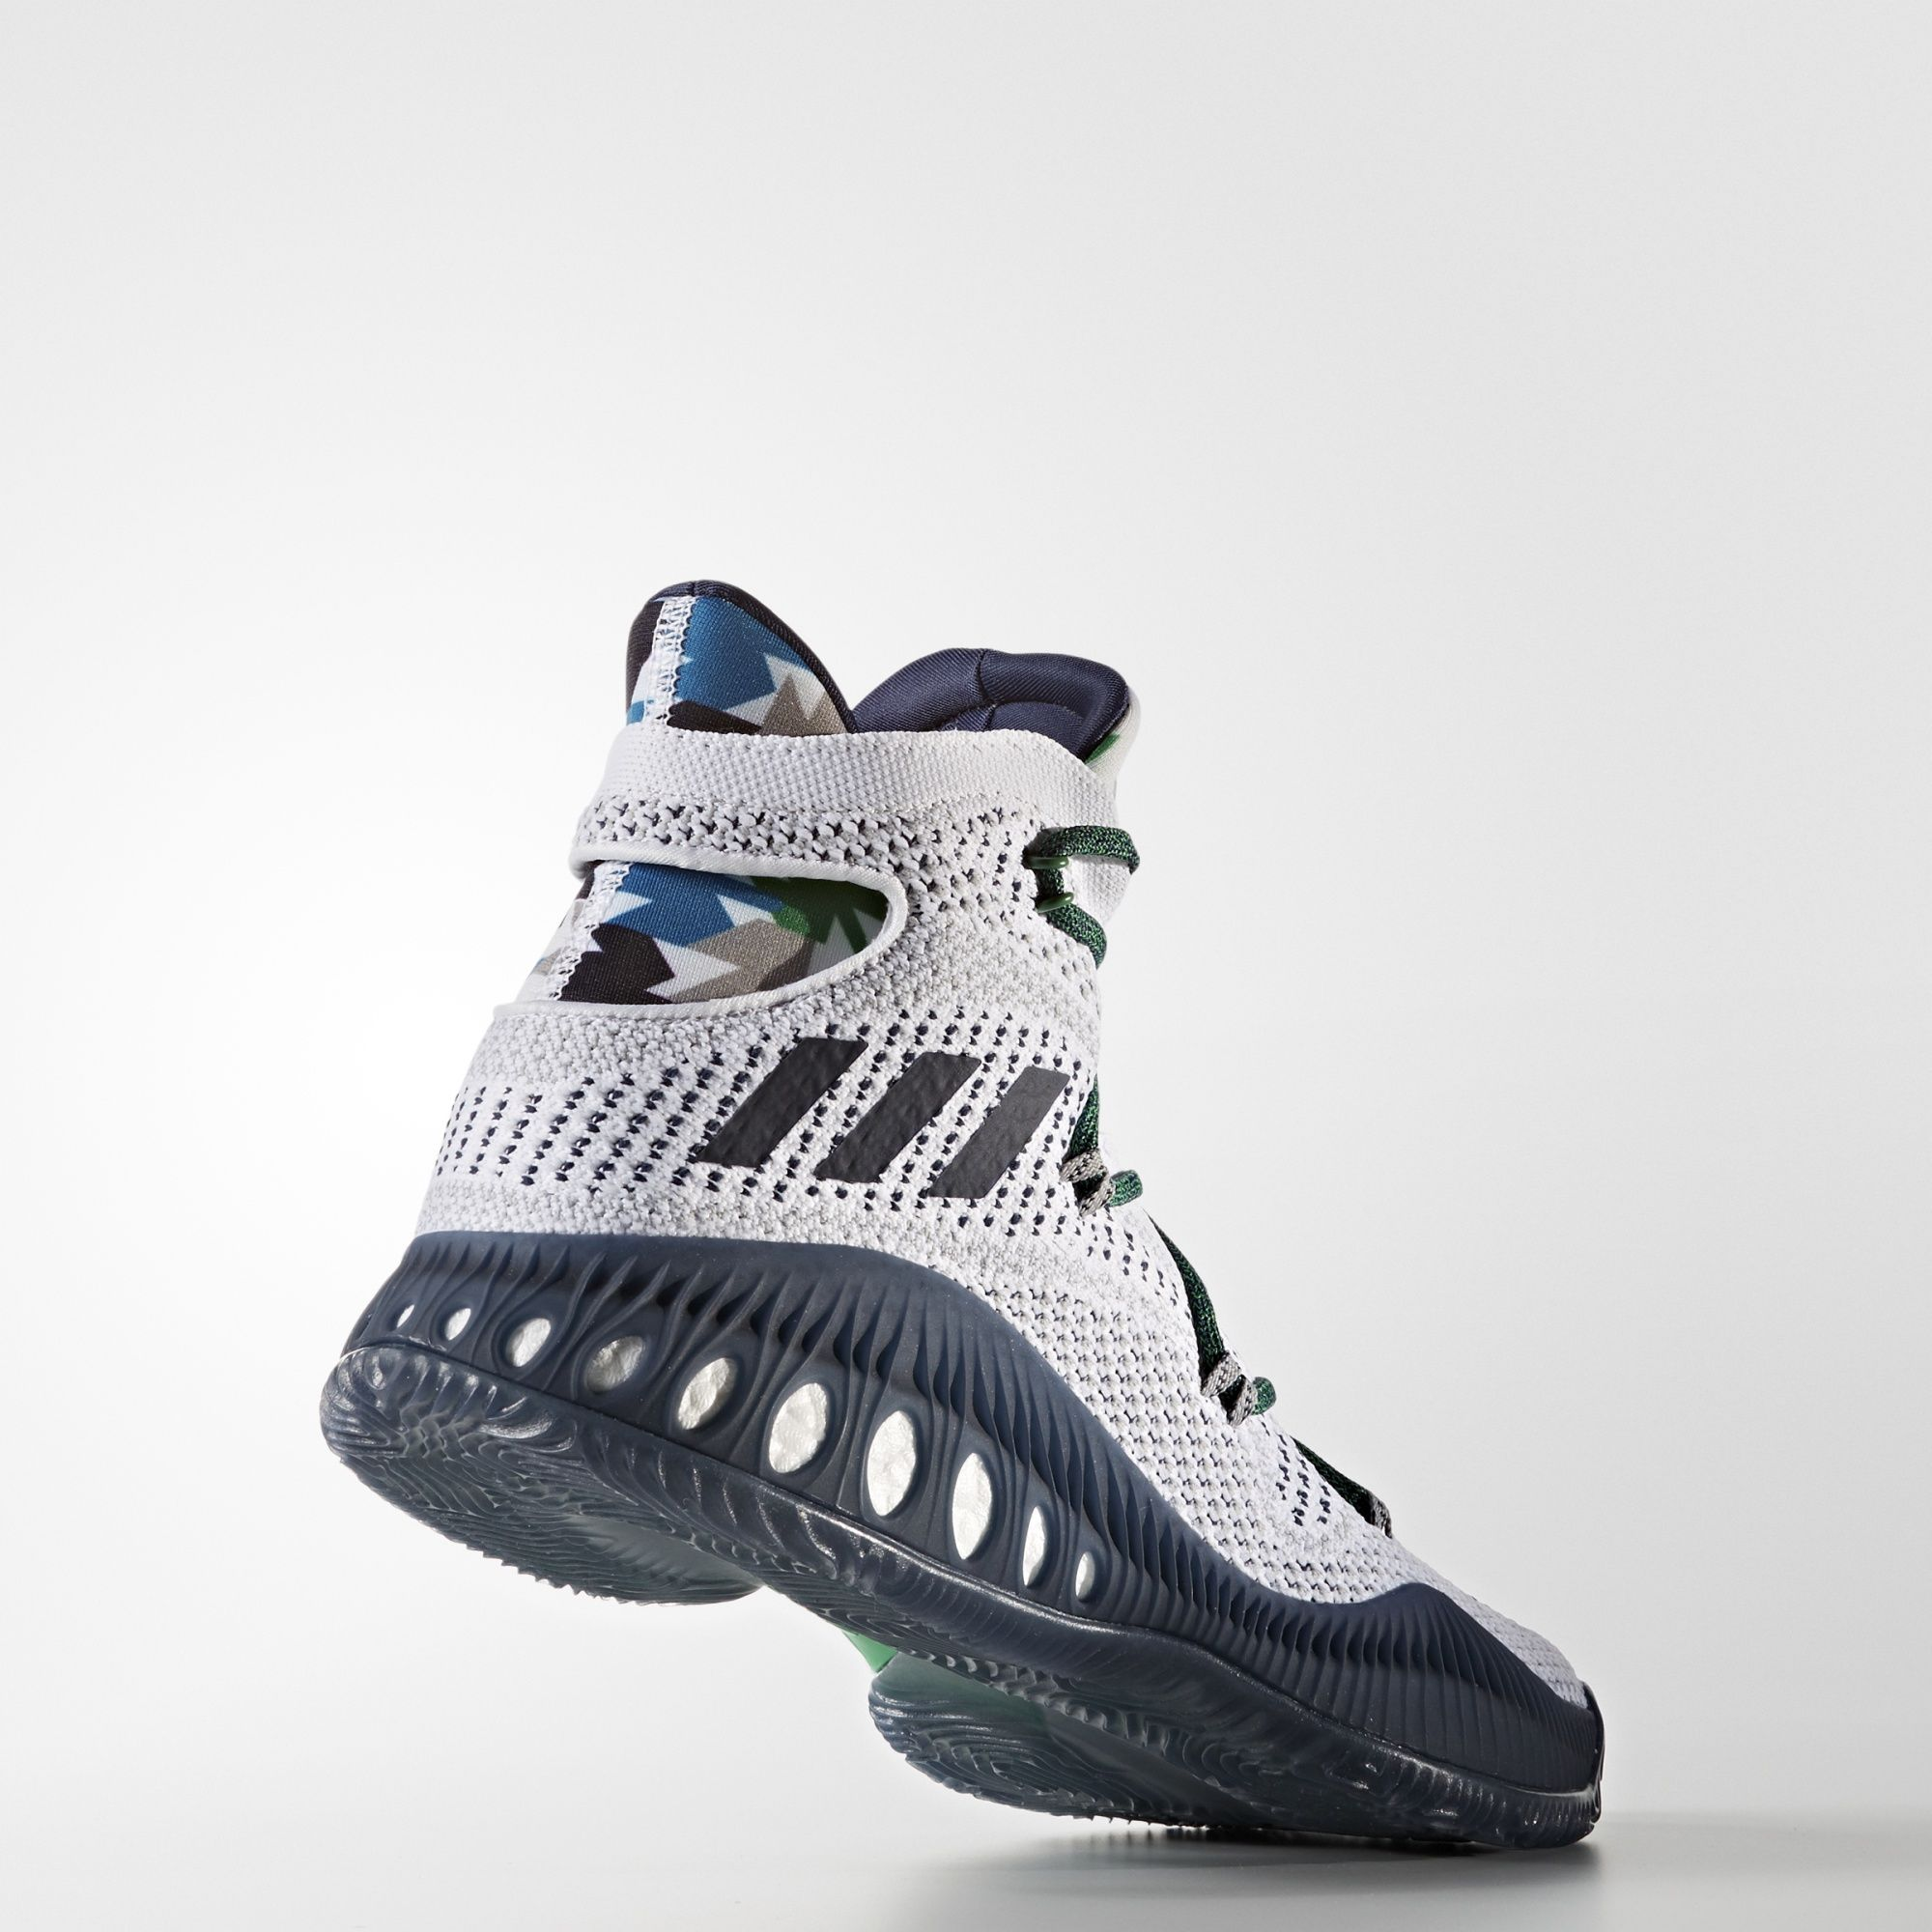 the-andrew-wiggins-pe-of-the-adidas-crazy-explosive-is-available-now-7